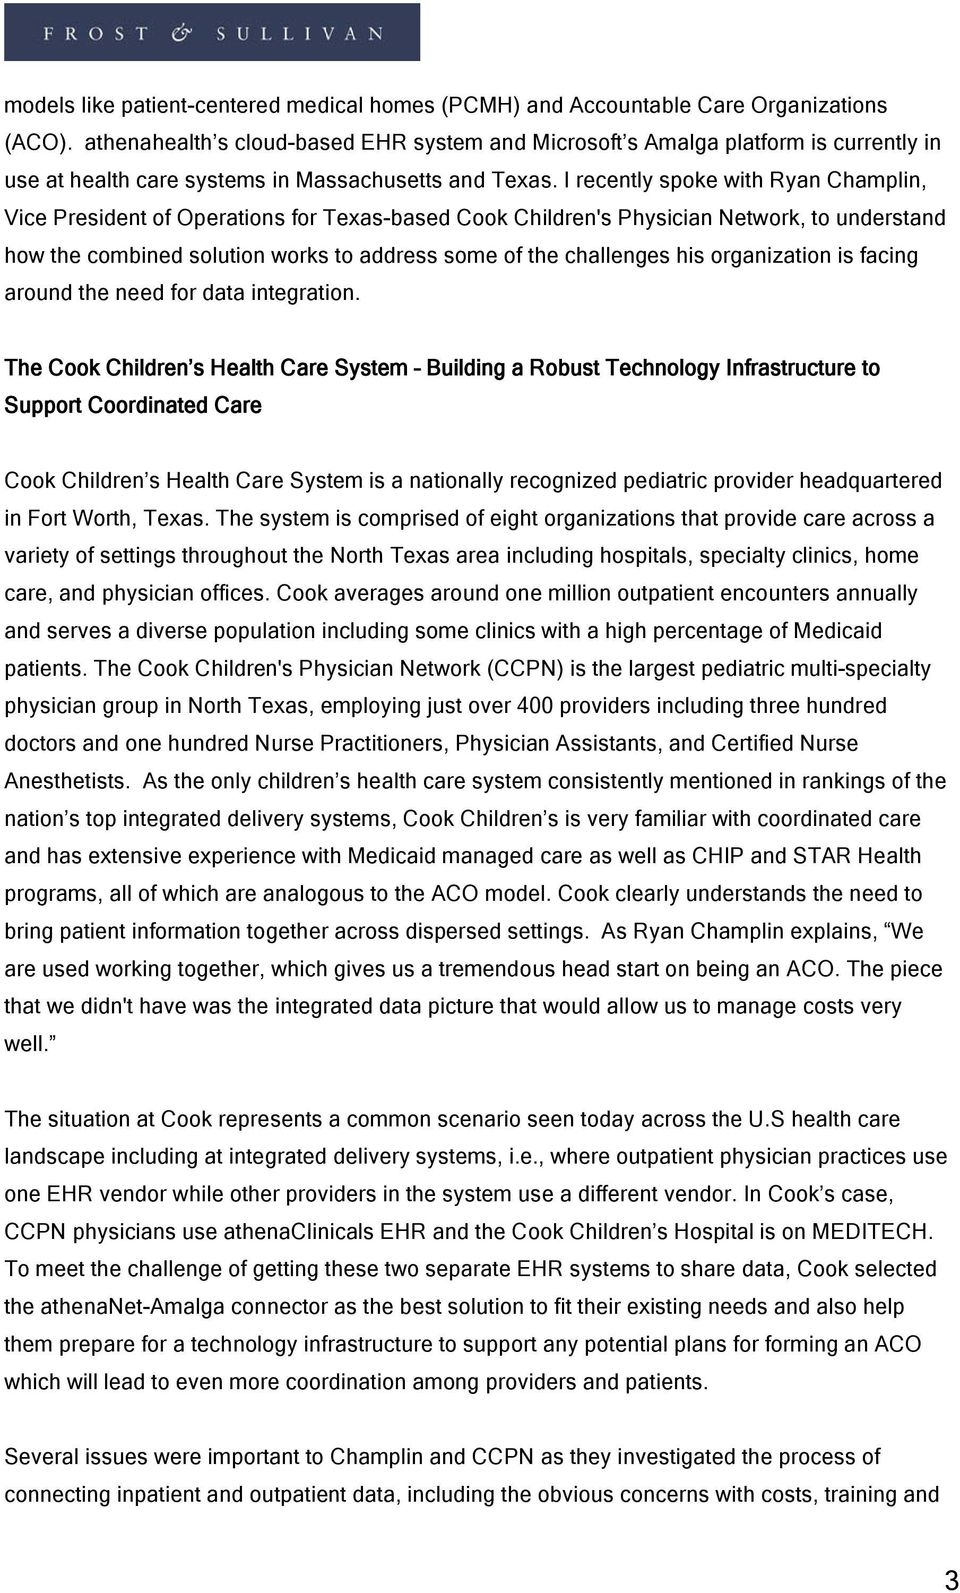 I recently spoke with Ryan Champlin, Vice President of Operations for Texas-based Cook Children's Physician Network, to understand how the combined solution works to address some of the challenges